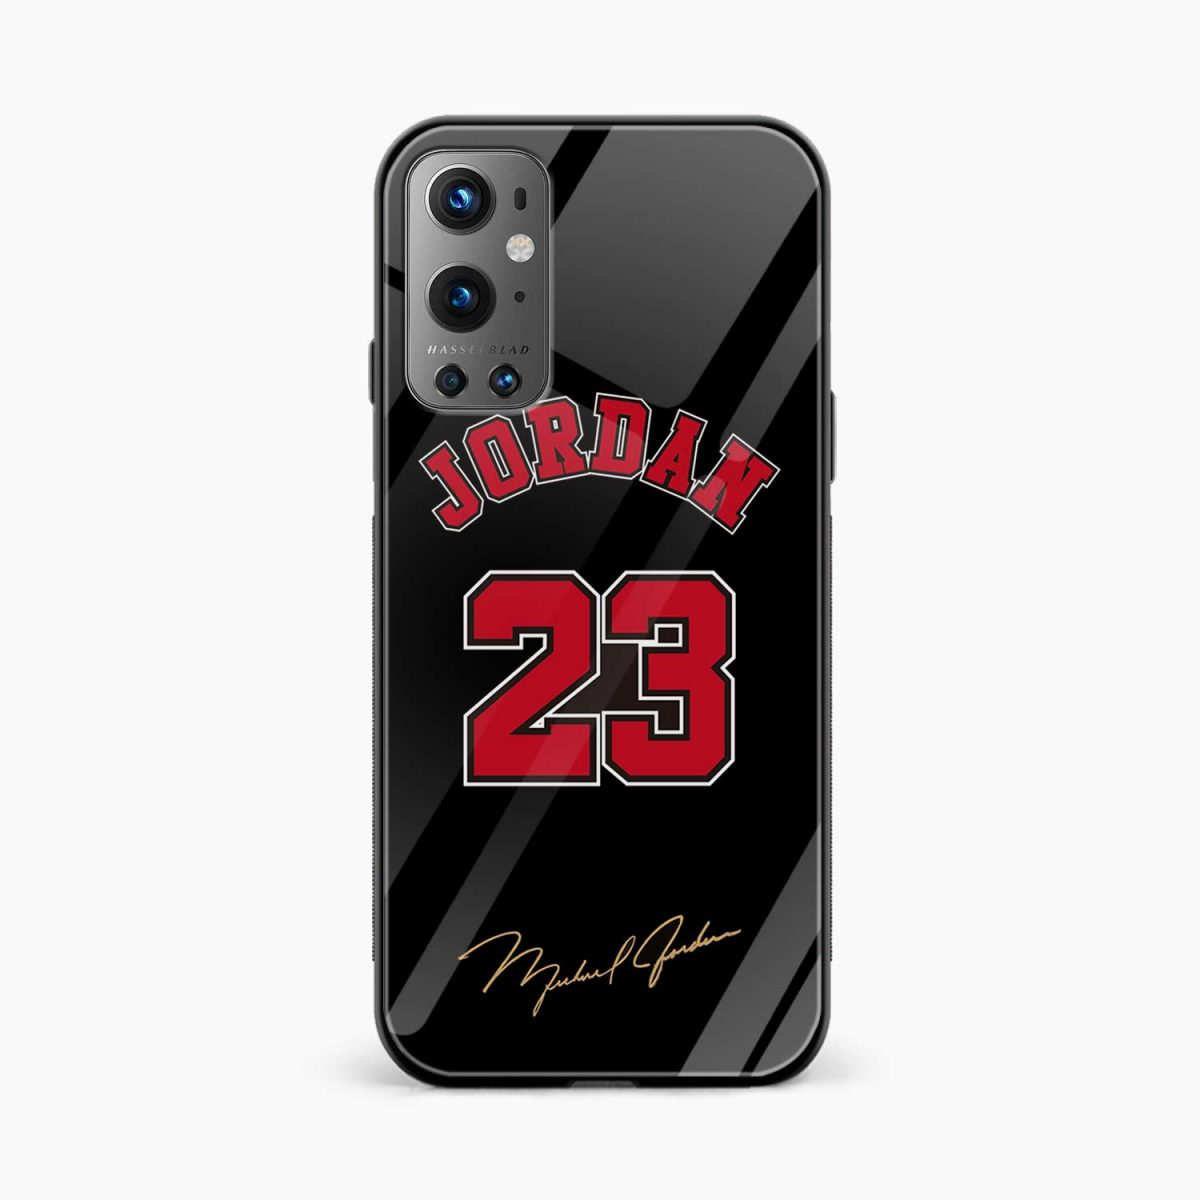 jordan 23 front view oneplus 9 pro back cover